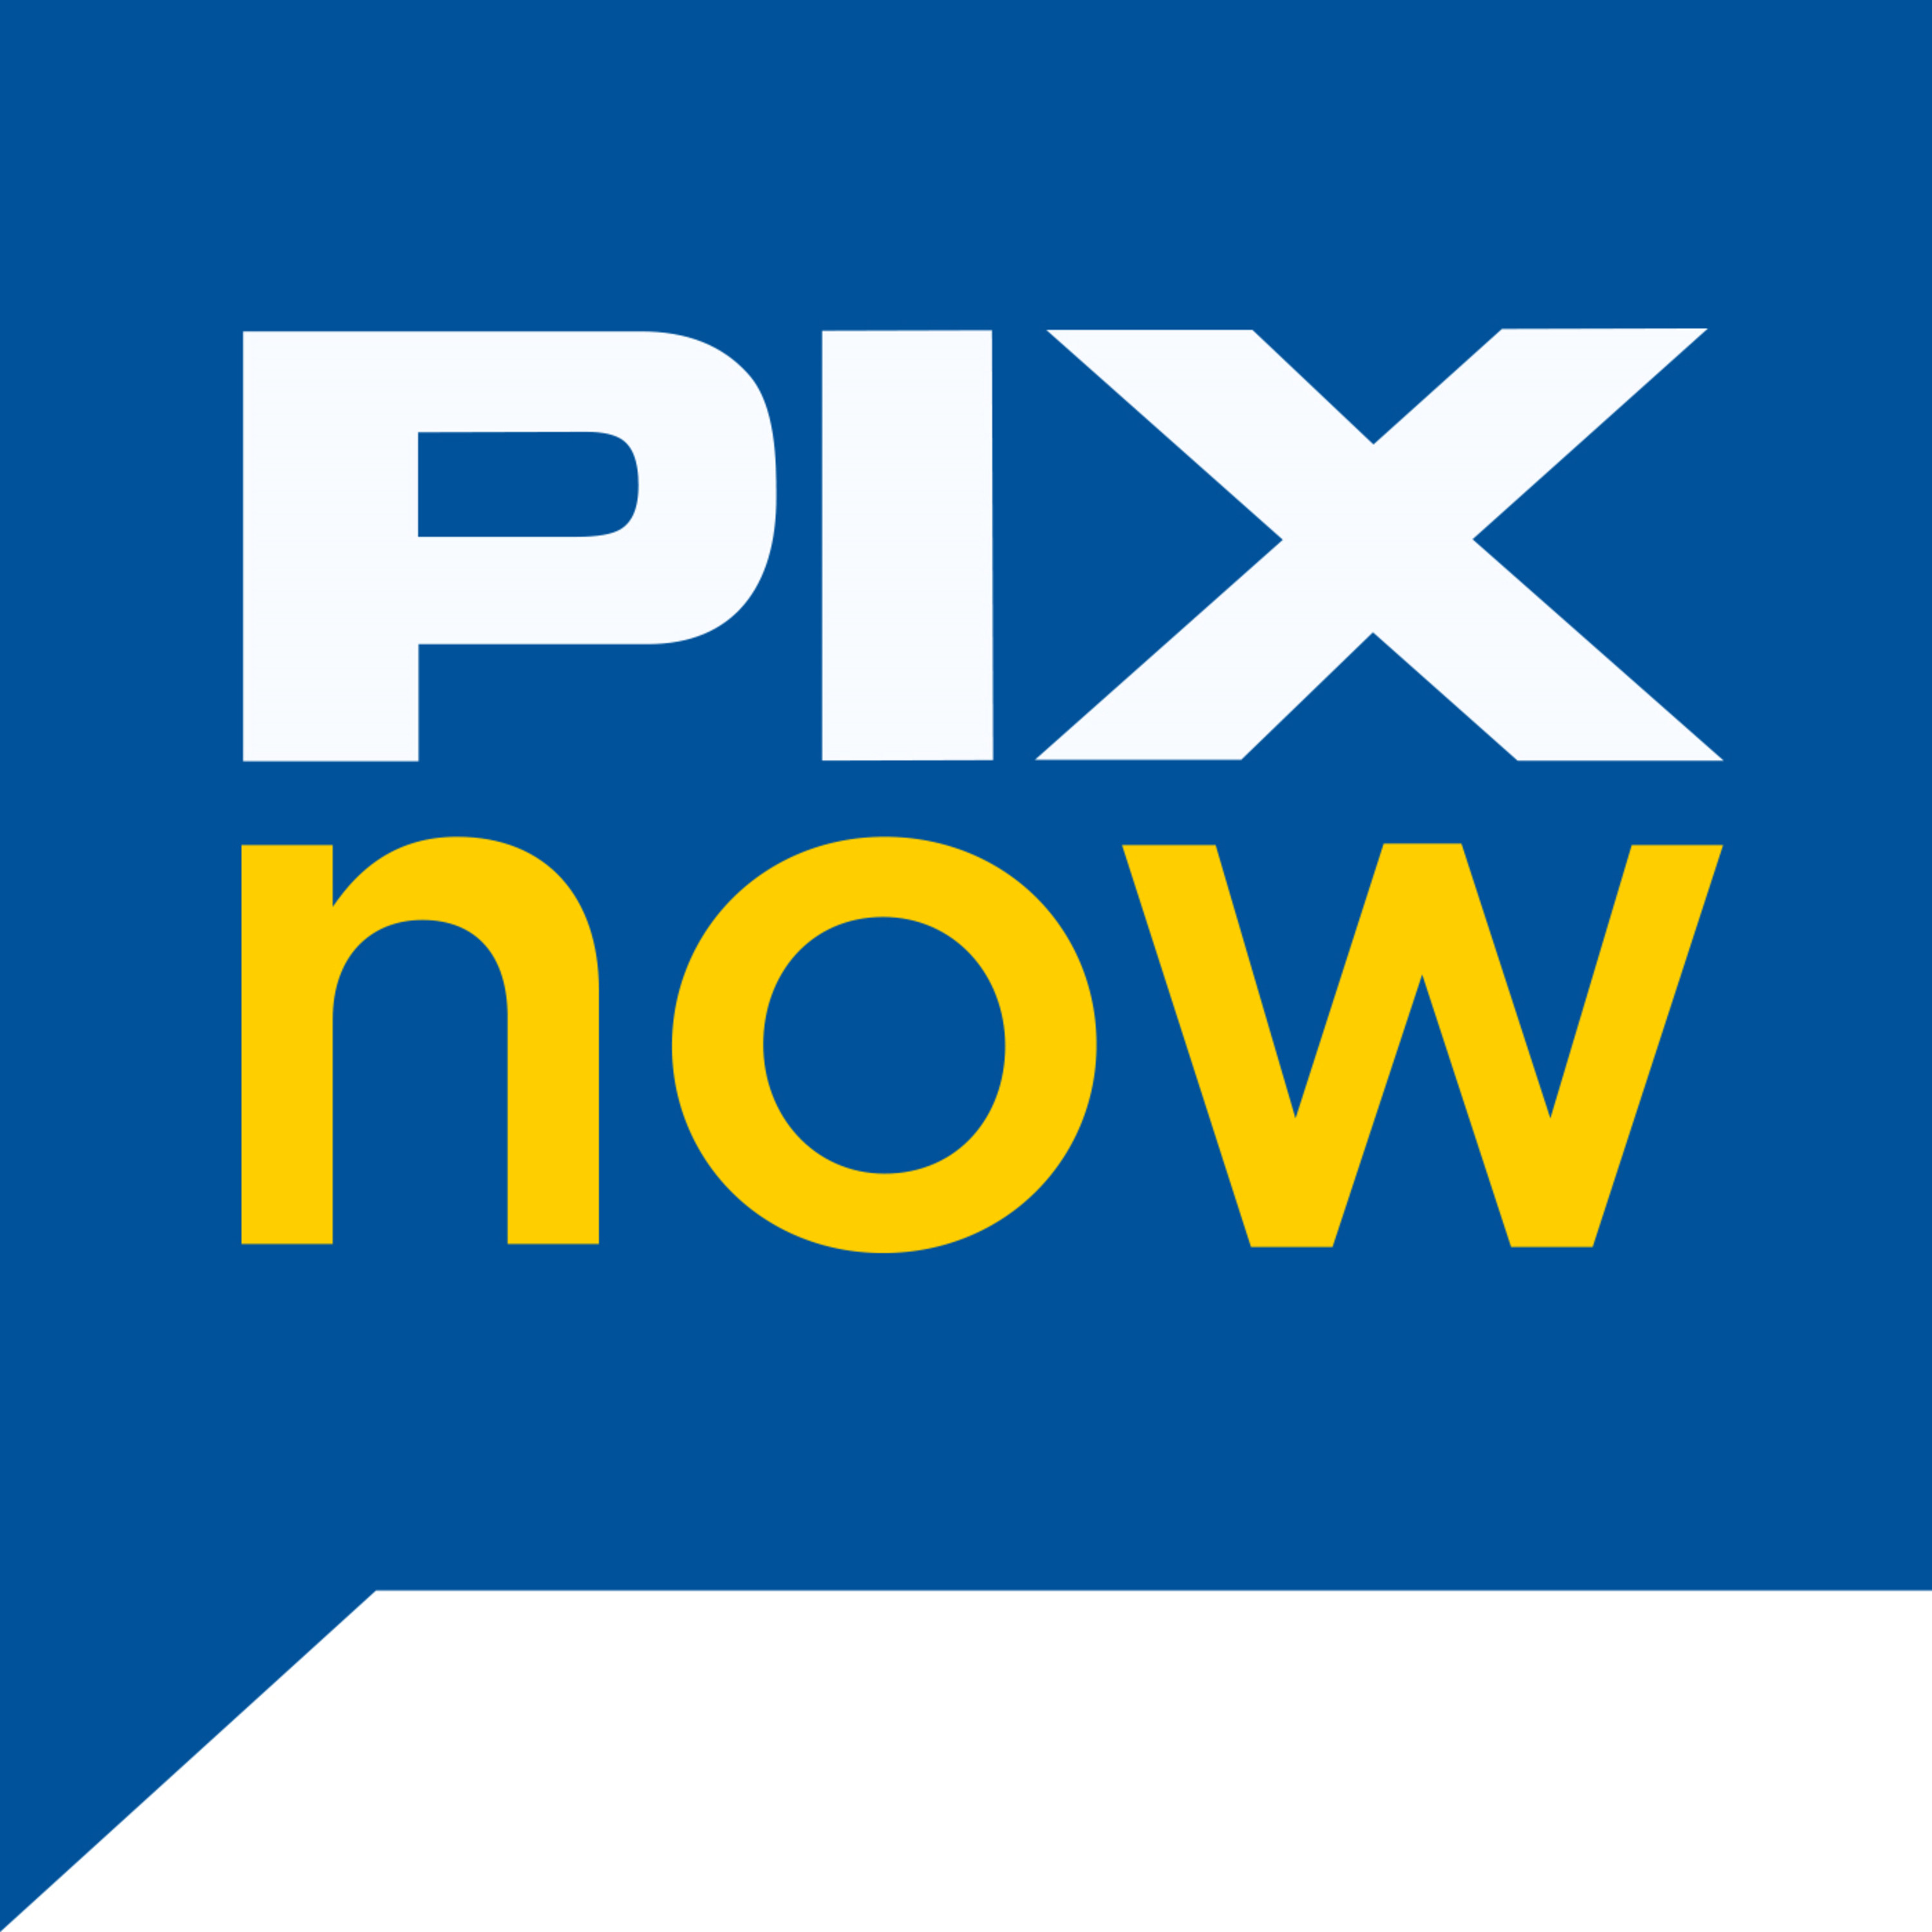 Kpix 5 San Francisco Bay Area By Cbs Local On Apple Podcasts